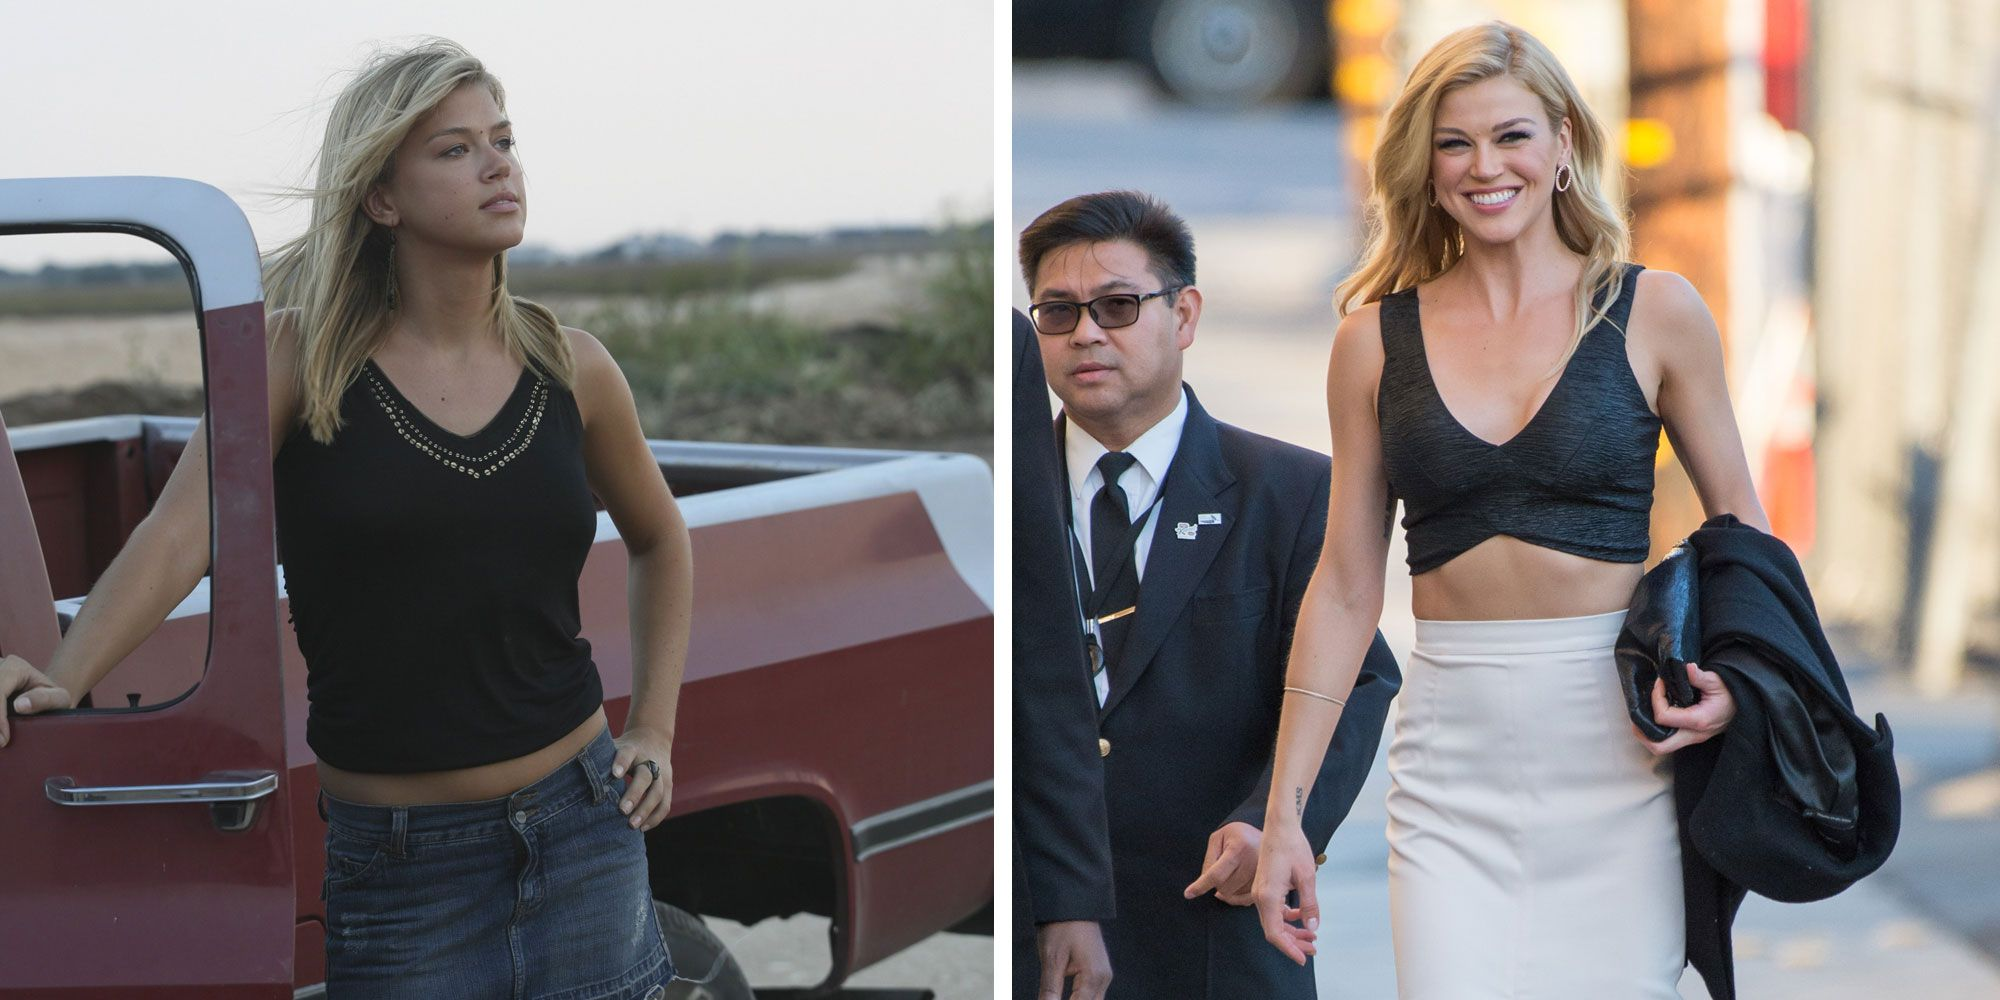 What the Friday Night Lights Cast Looks Like Now FNL Cast Then